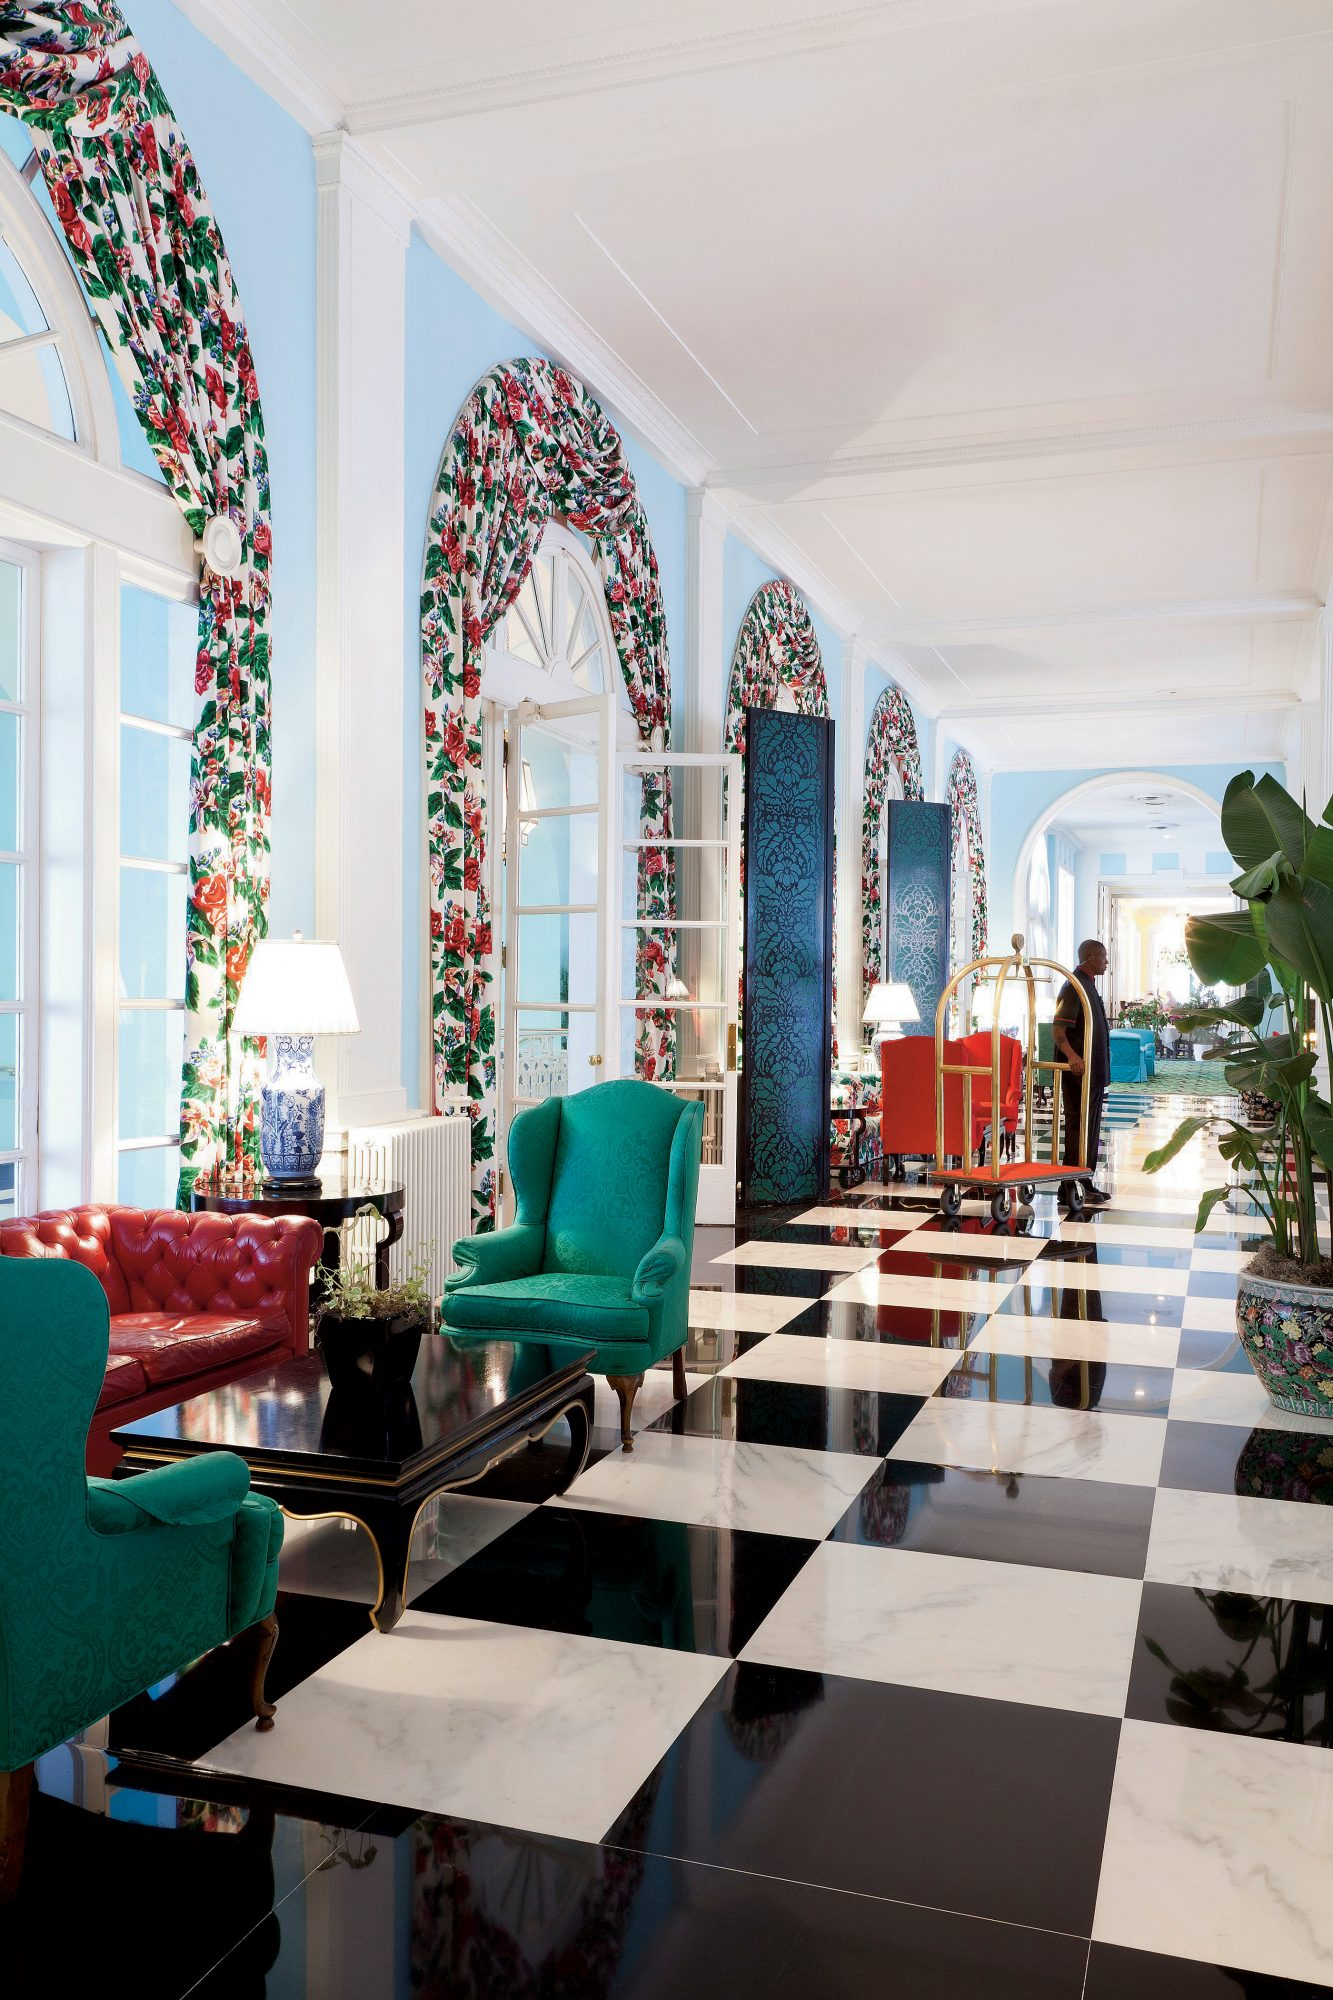 Stay at The Greenbrier Resort